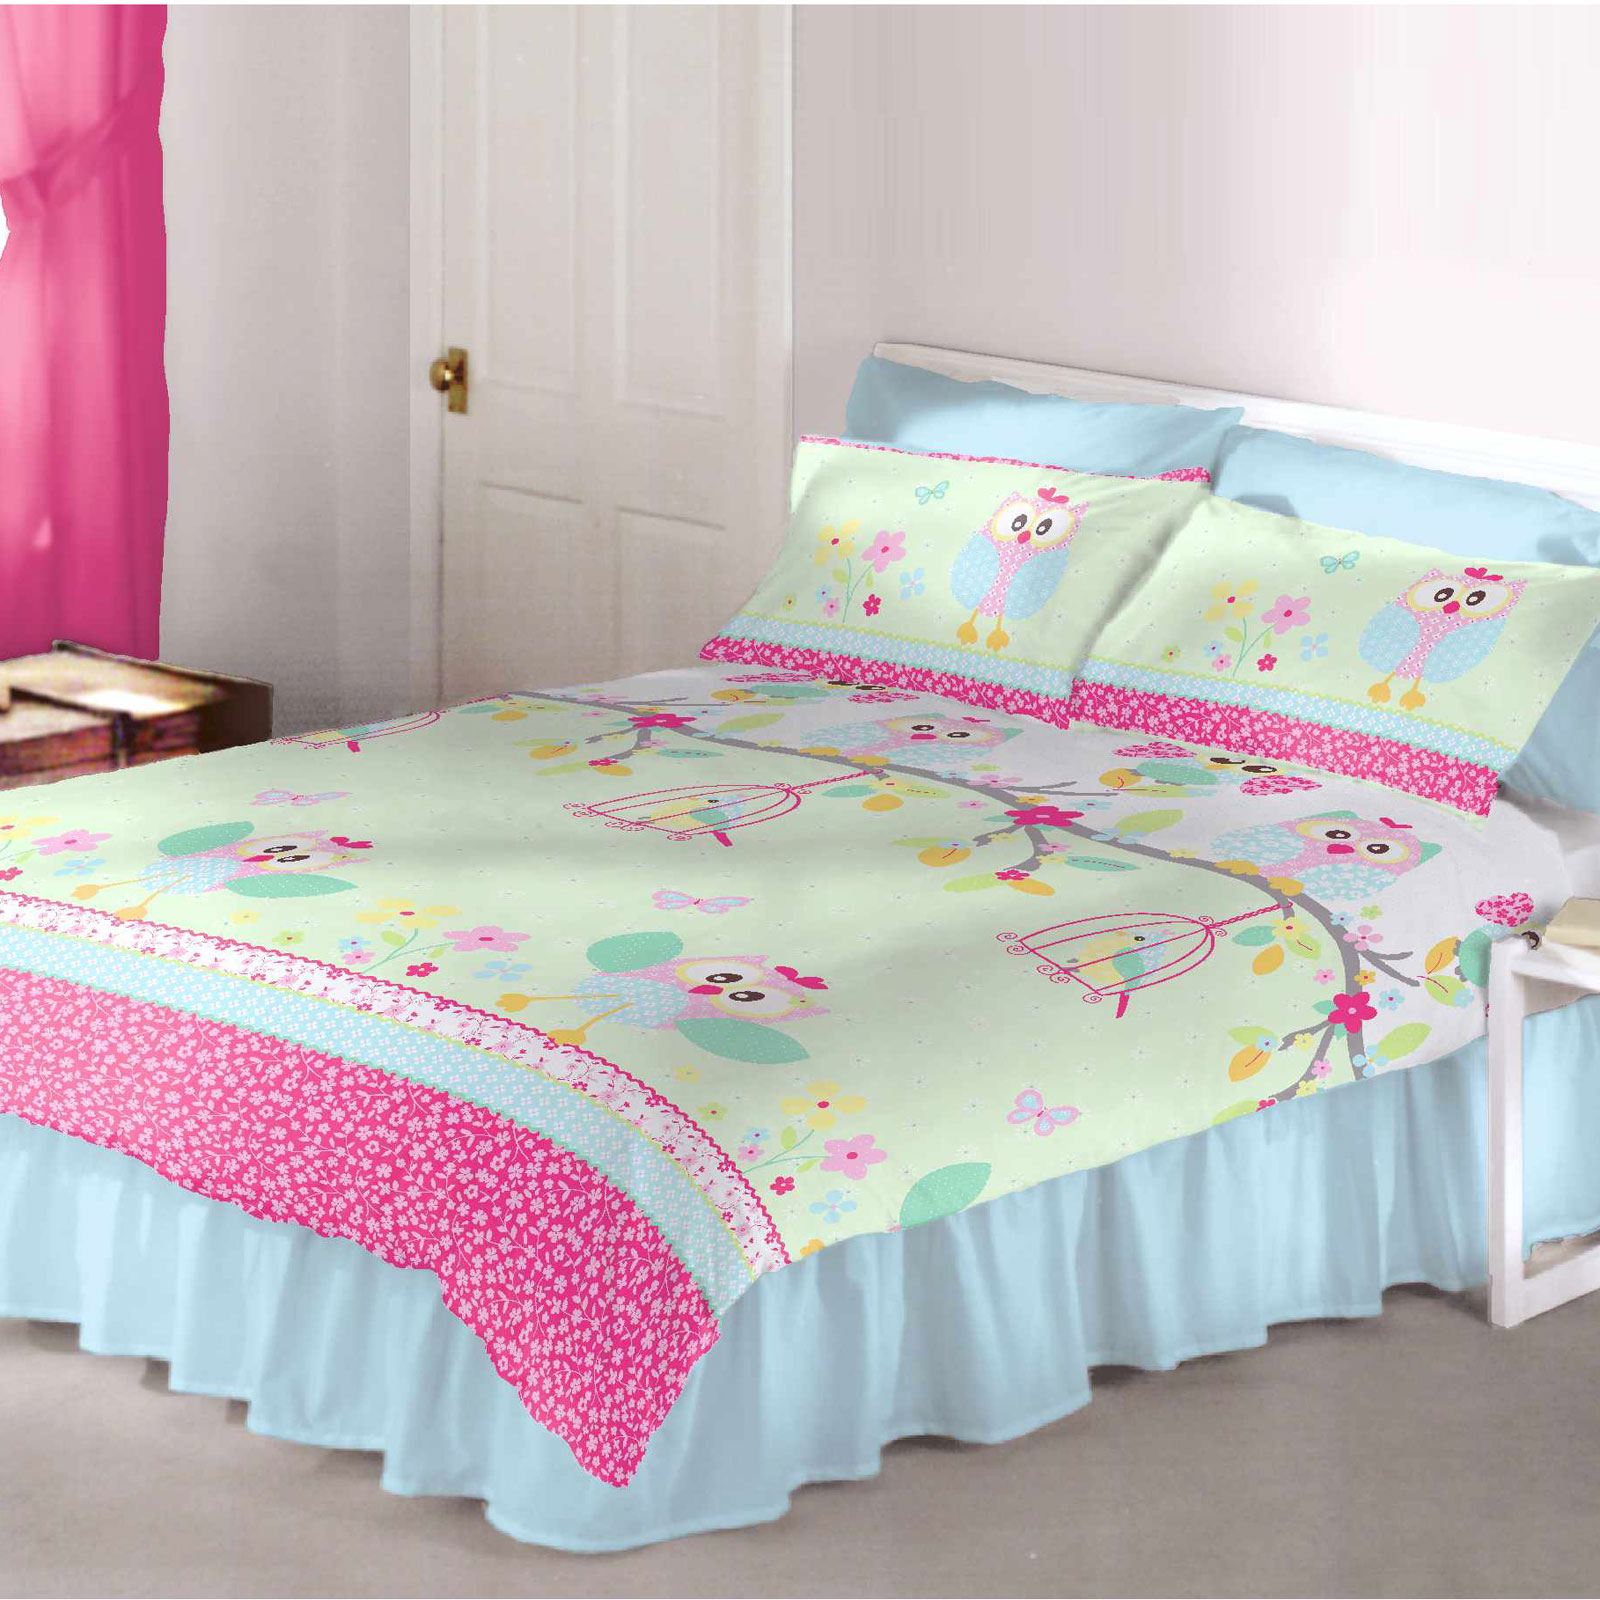 EXCLUSIVE DOUBLE DUVET COVER SETS KIDS BEDDING BOYS GIRLS ...